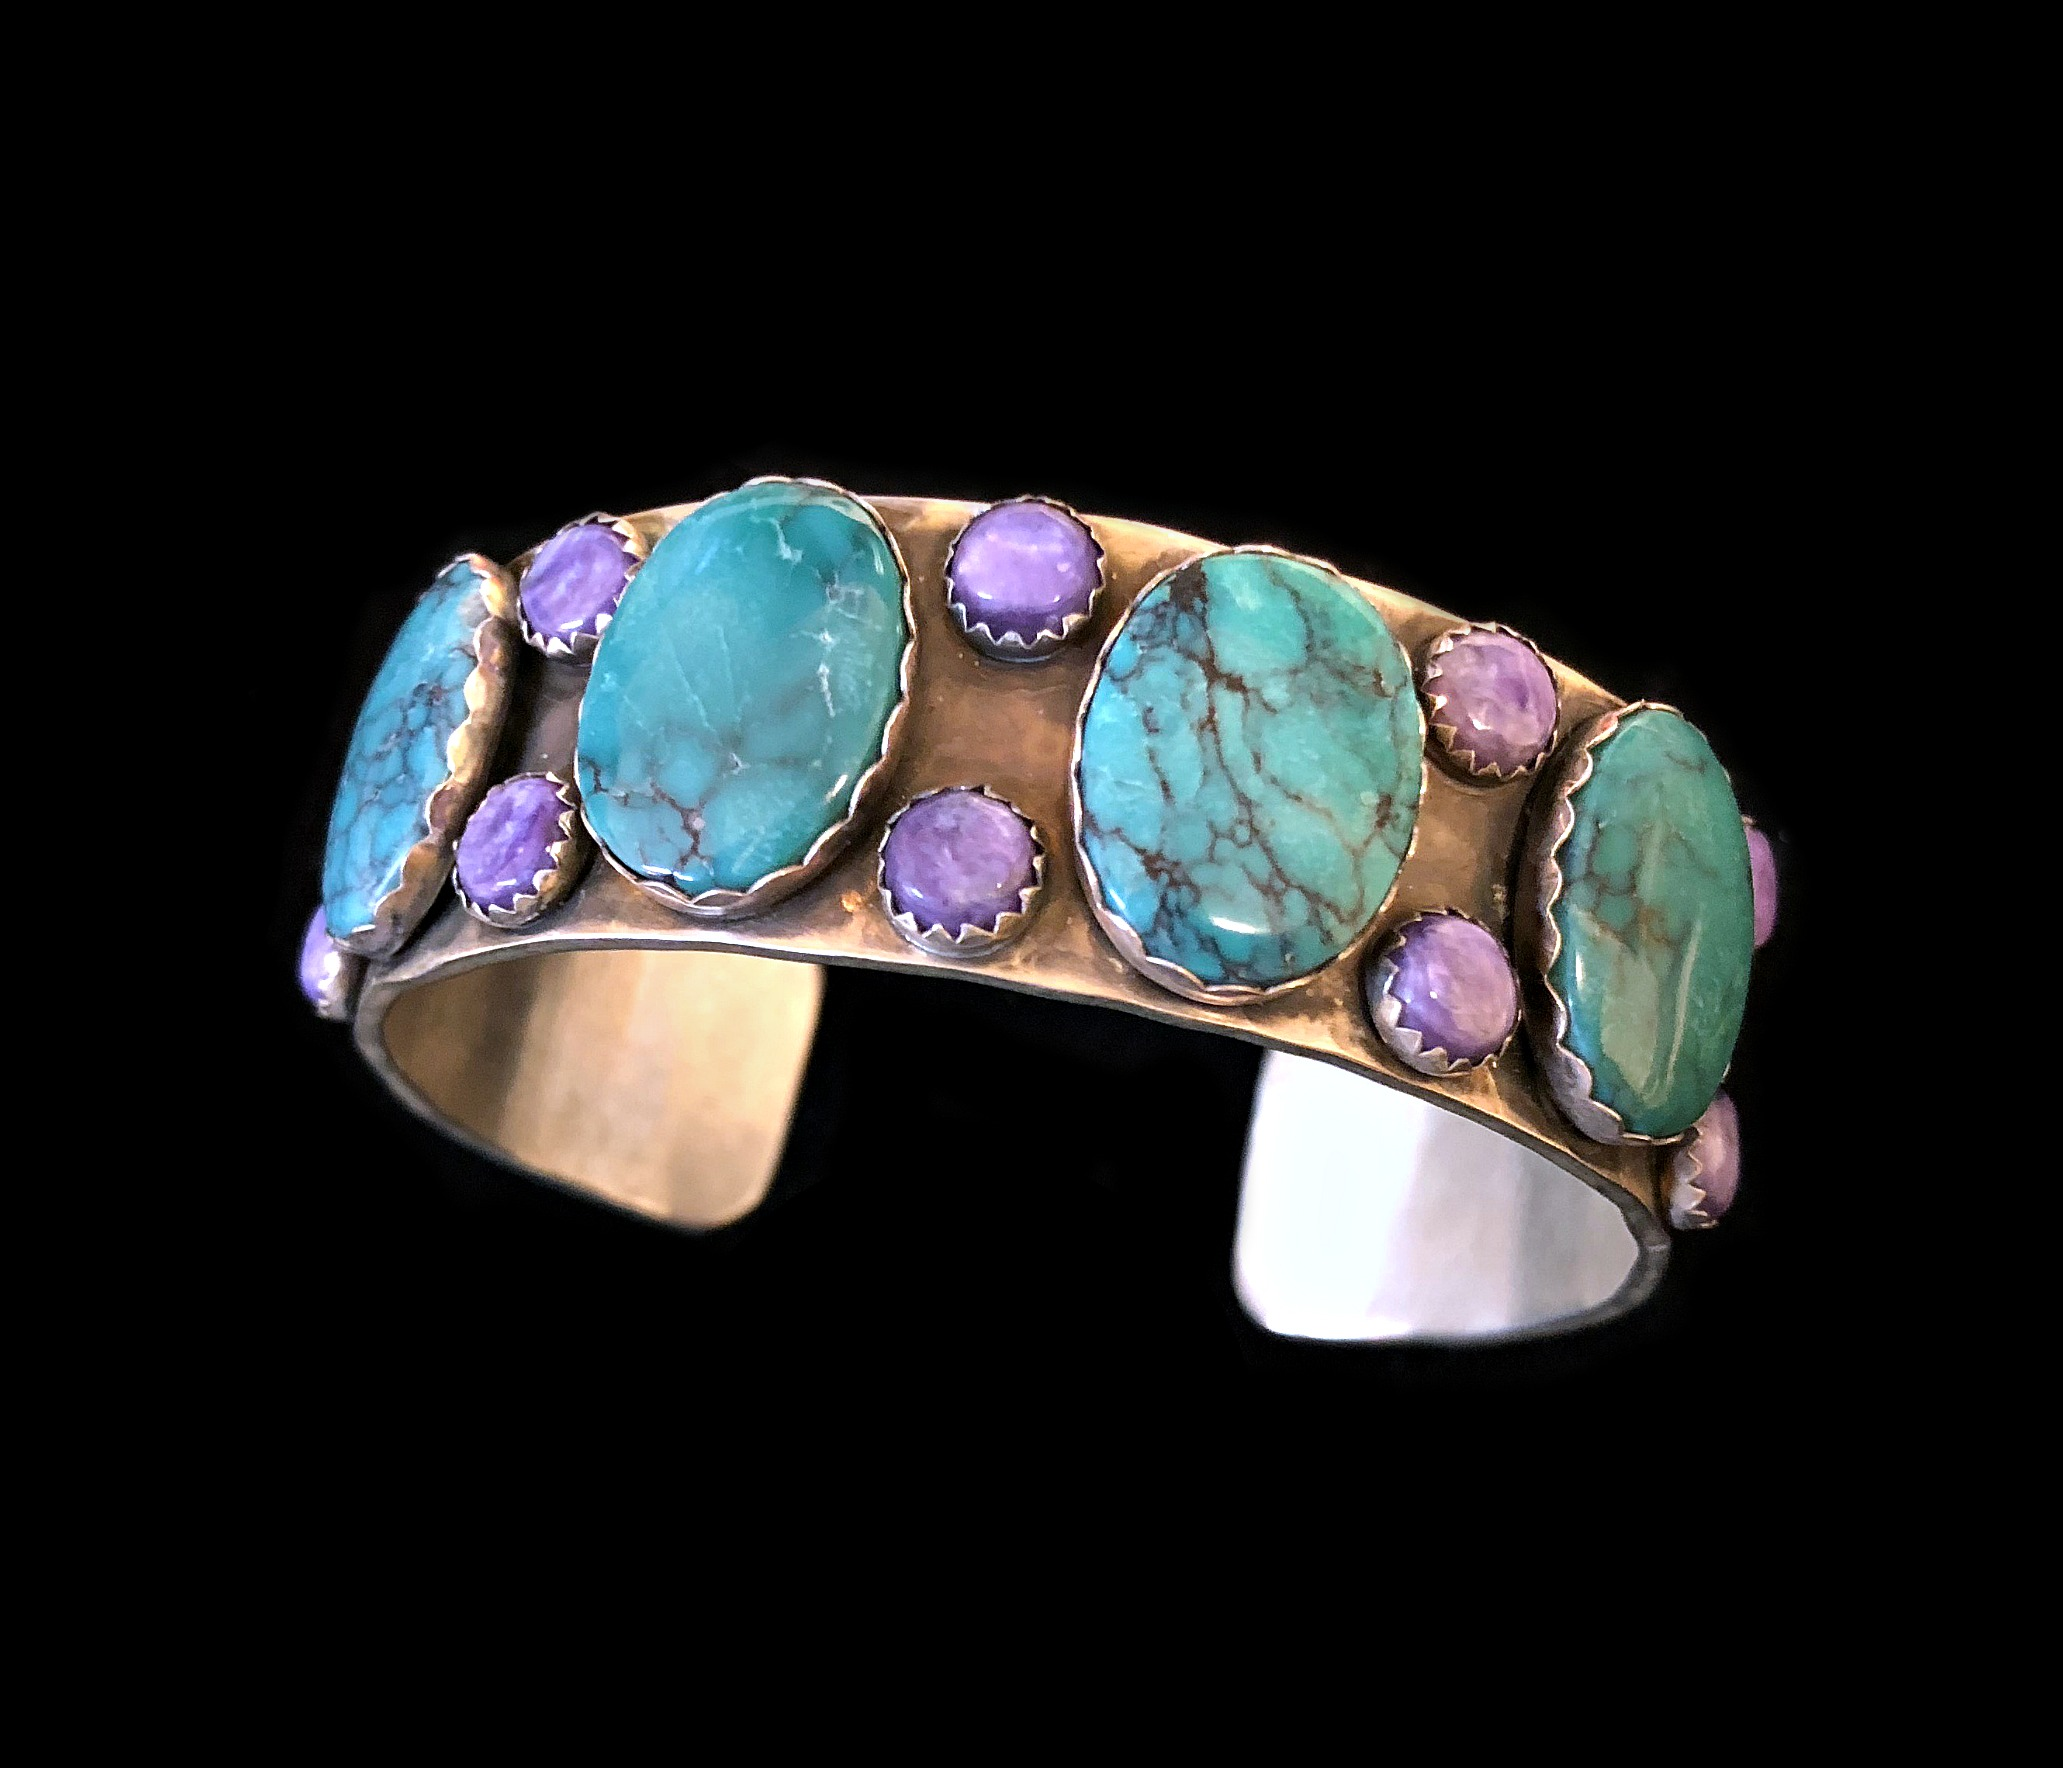 Turquoise and Charoite